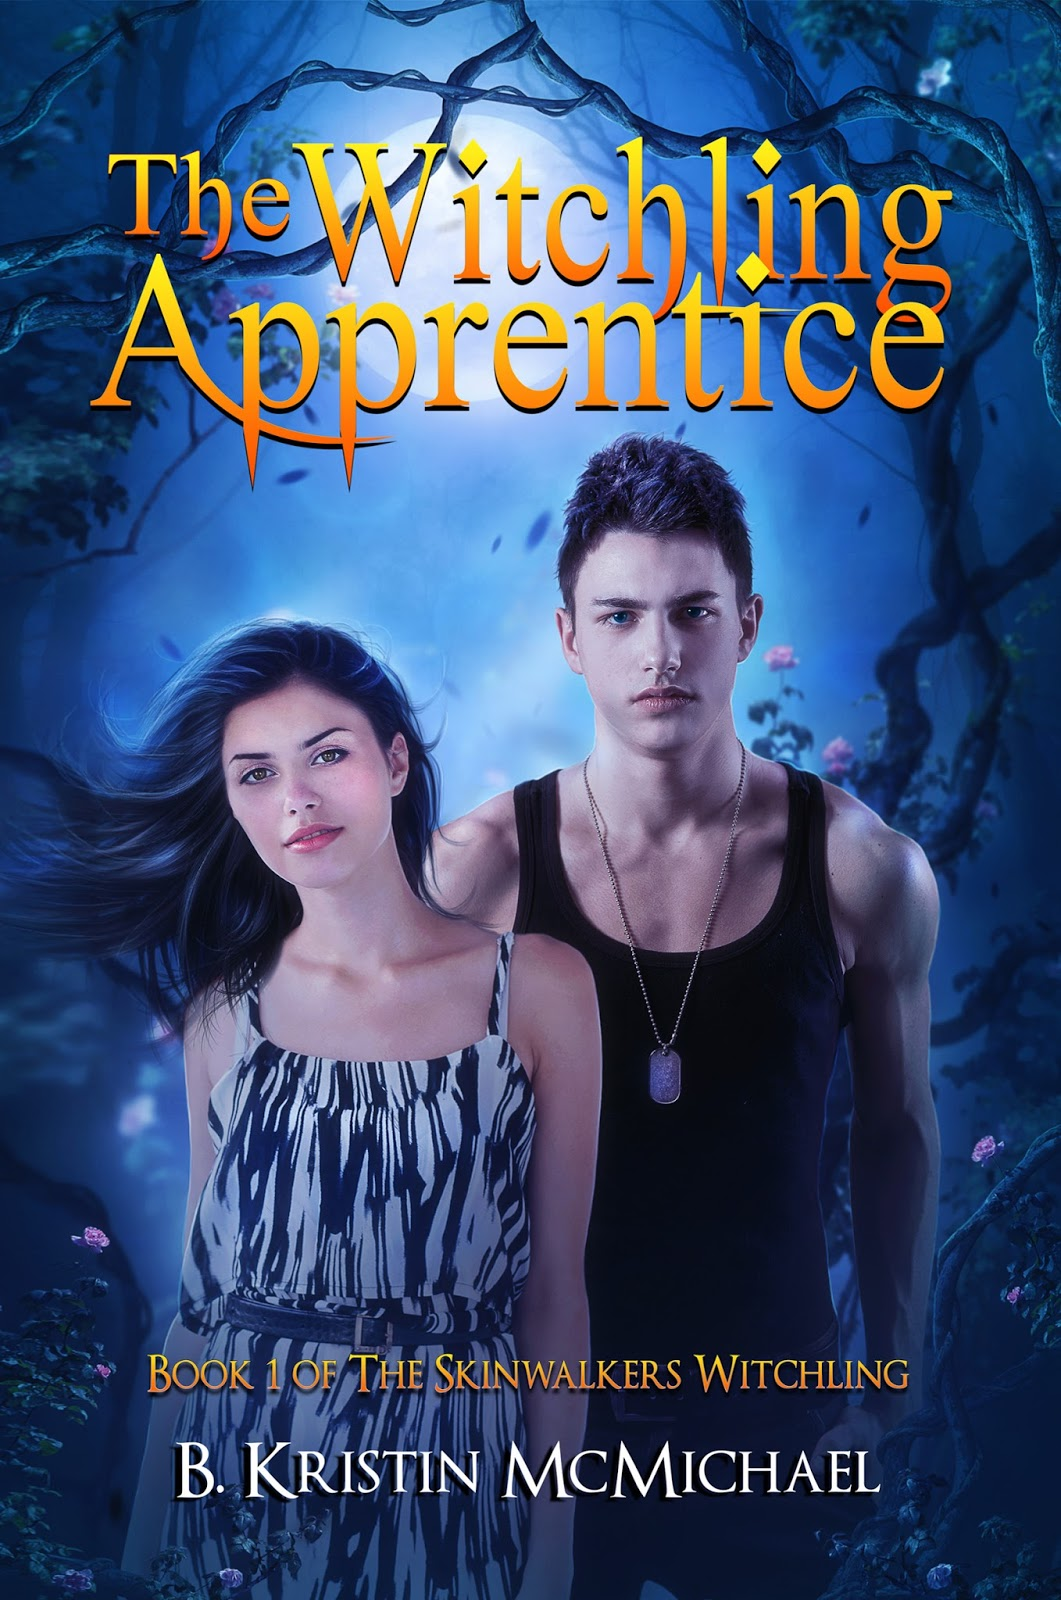 New Release: The Witchling Apprentice By B Kristin Mcmichael  Excerpt &  Giveaway